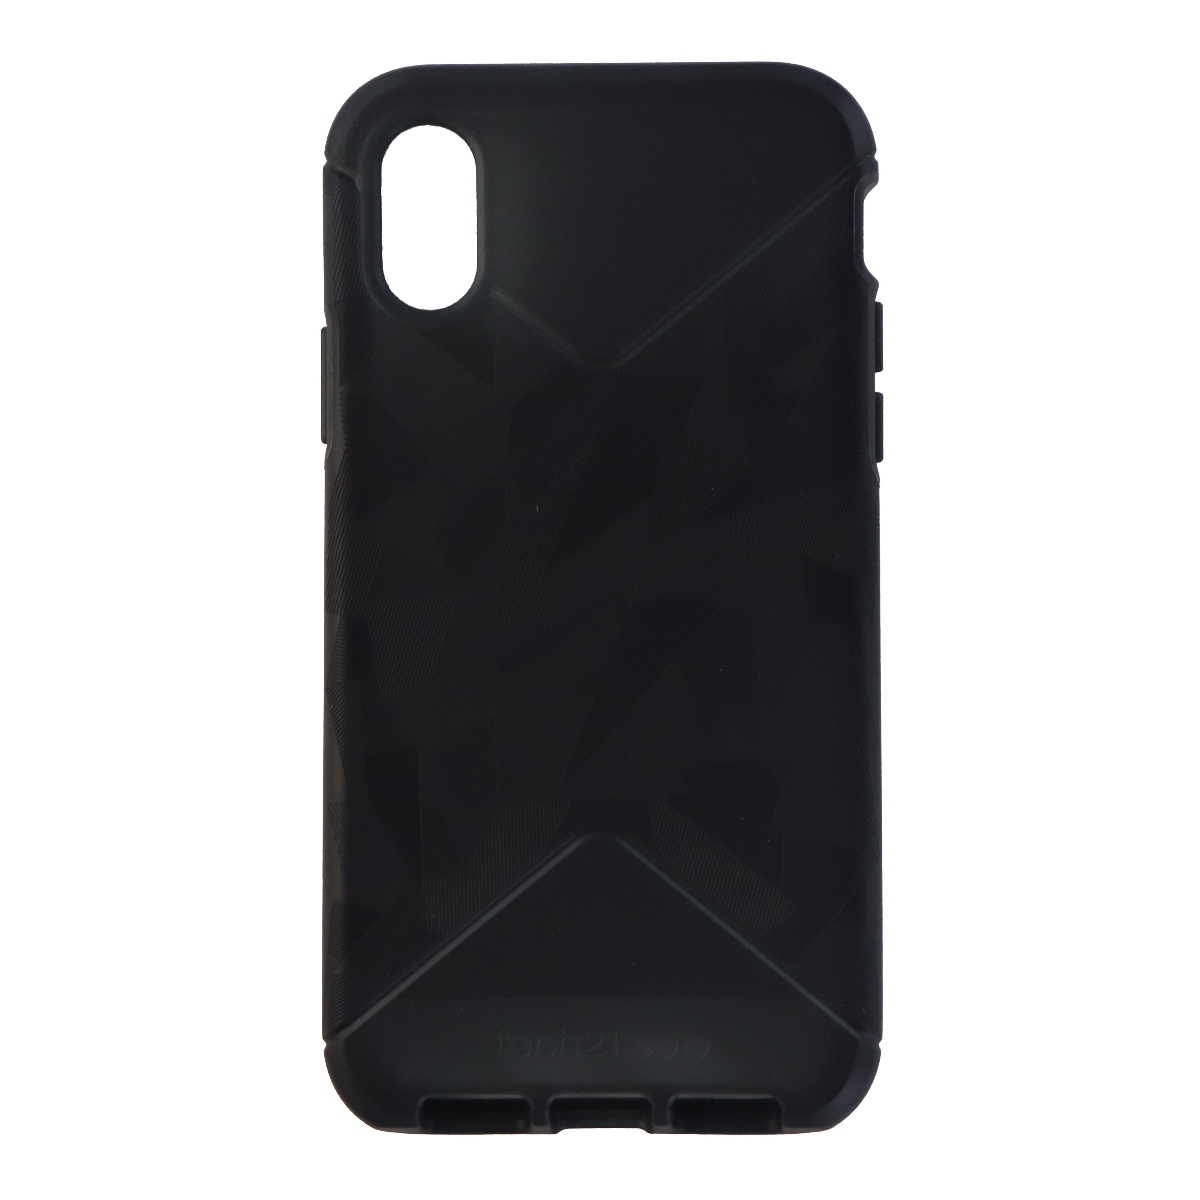 Tech21 Evo Tactical Series Protective Case Cover for iPhone X - Black